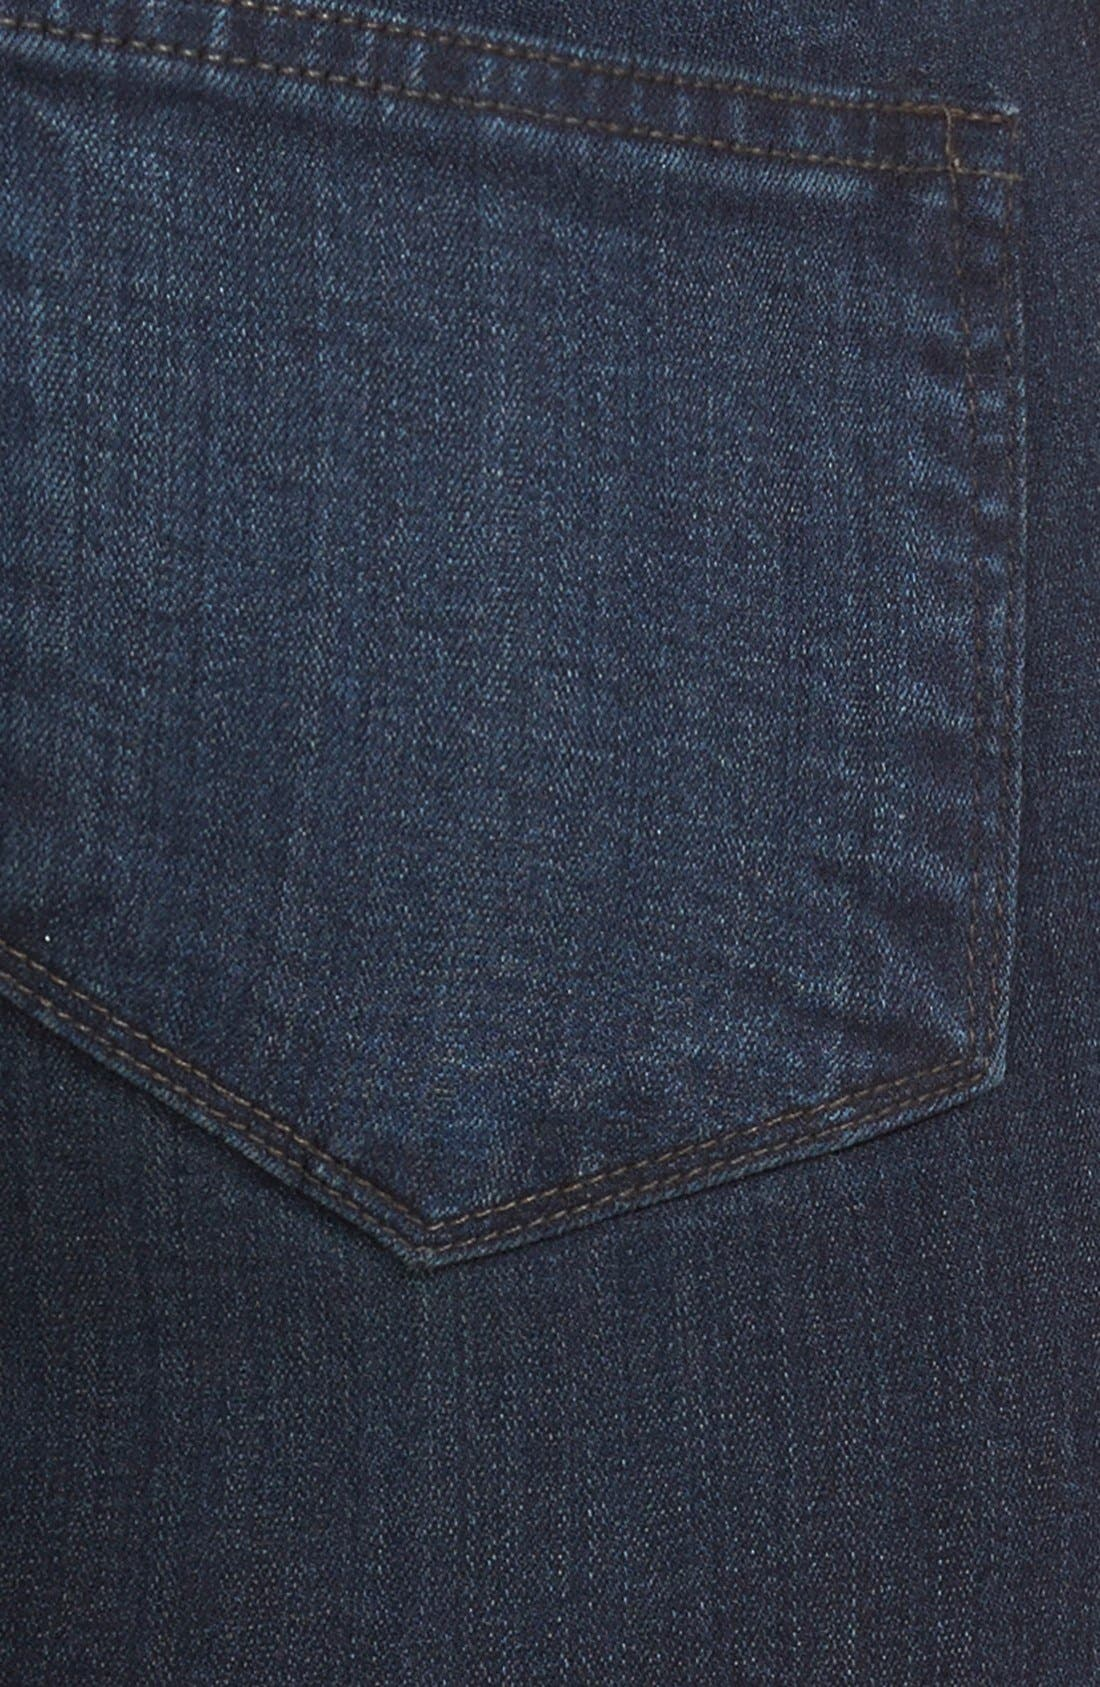 Alternate Image 3  - Paige Denim 'Skyline' Bootcut Jeans (Keely) (Petite) (Nordstrom Exclusive)